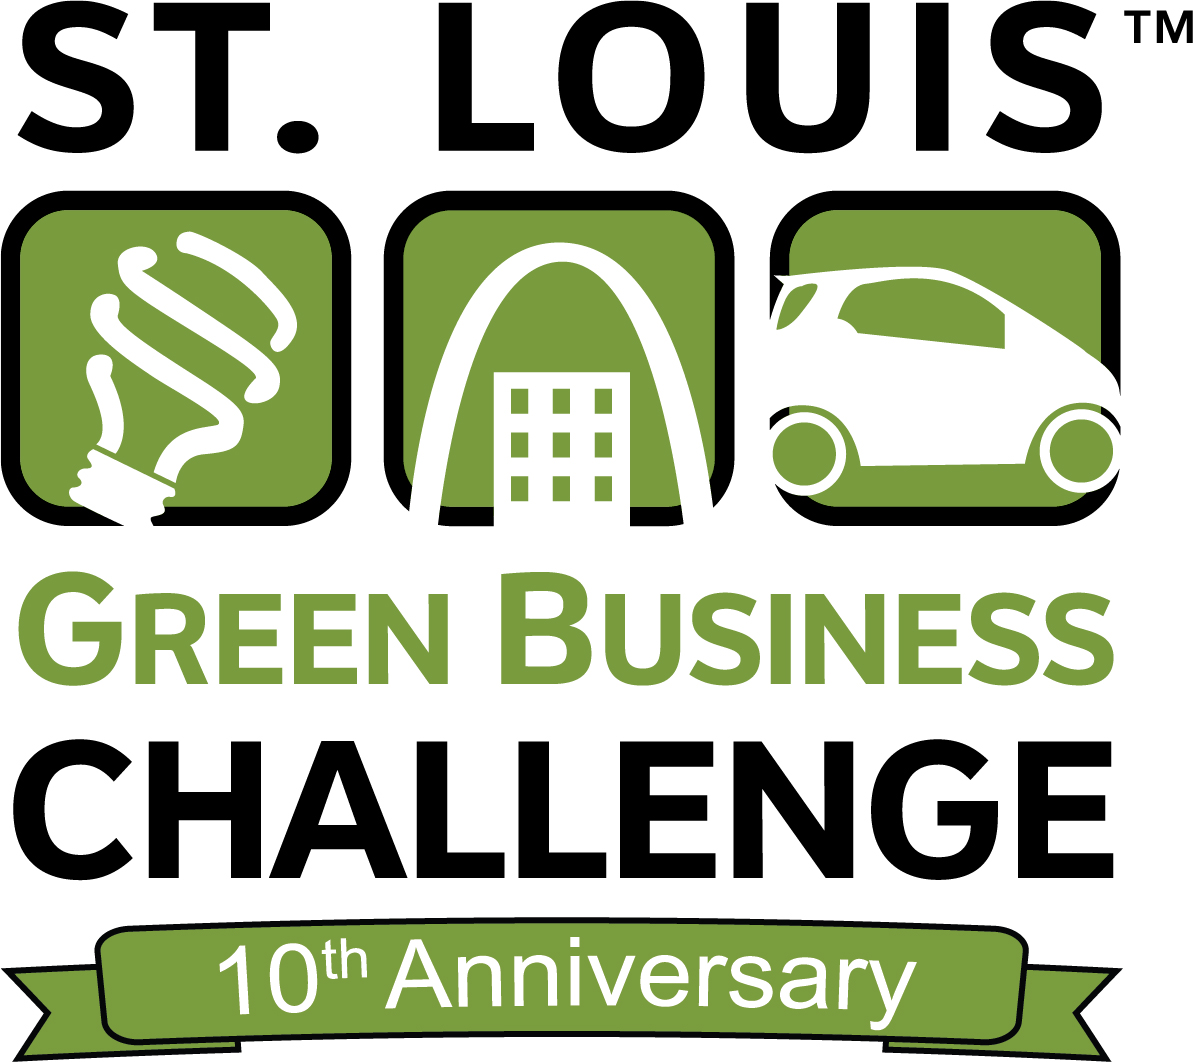 Celebrating Winners of the Tenth Annual St. Louis Green Business Challenge!